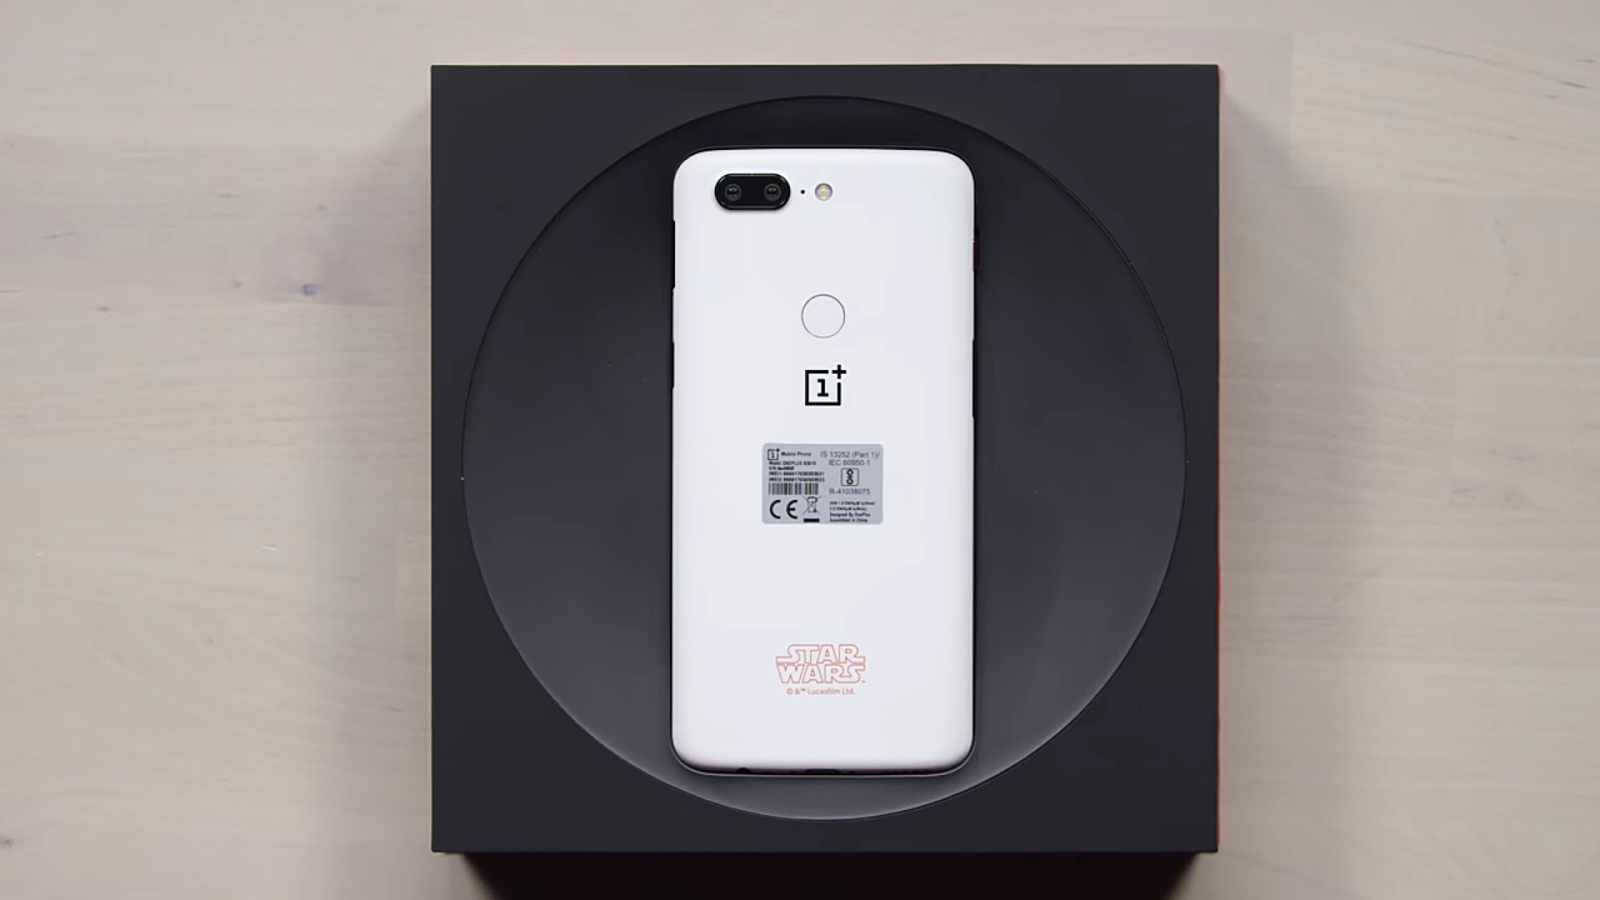 The OnePlus 5T Starwars Limited Edition Smart Phone